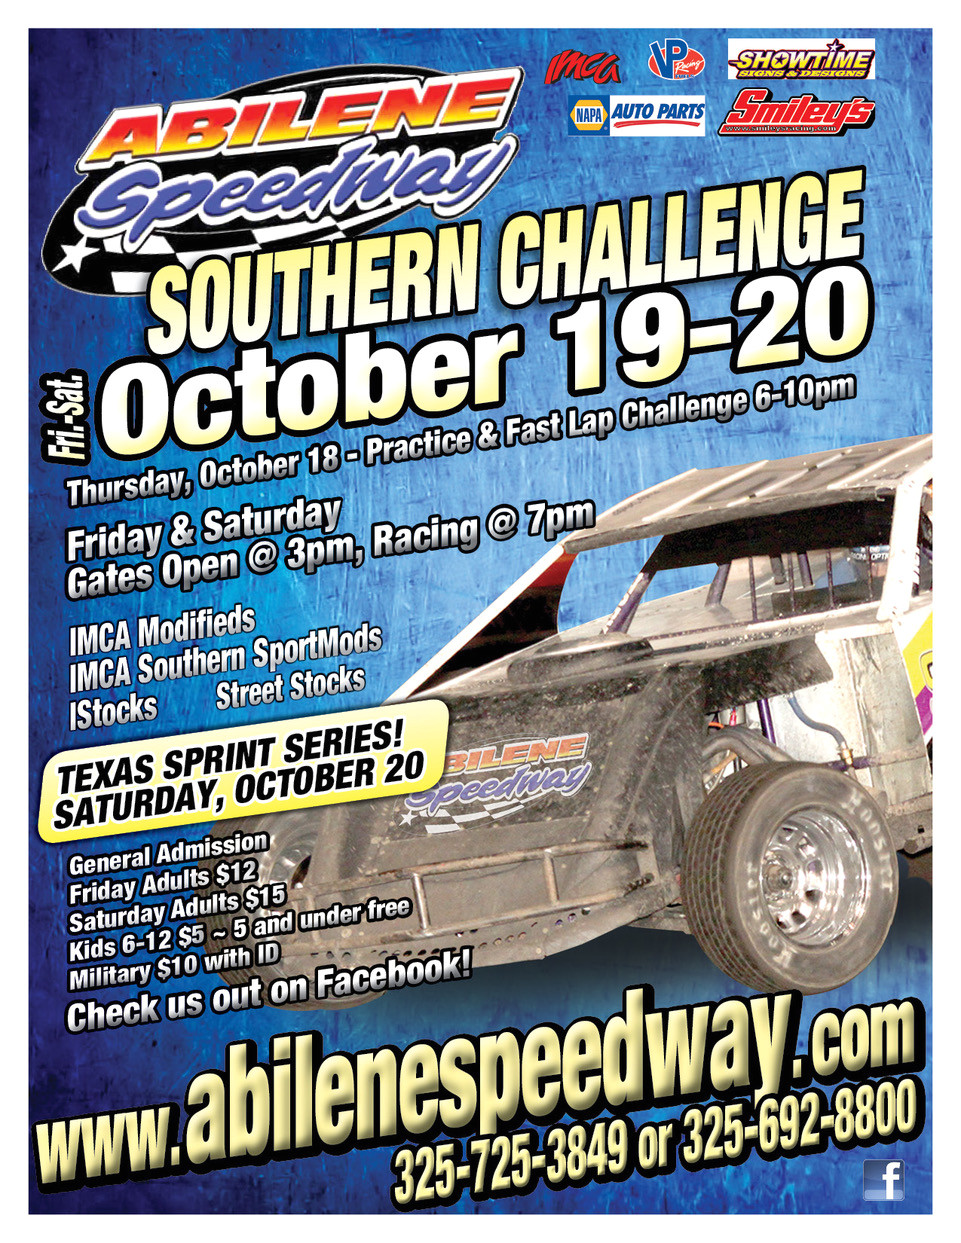 print the registration form below and send in to register for the 2018 southern challenge